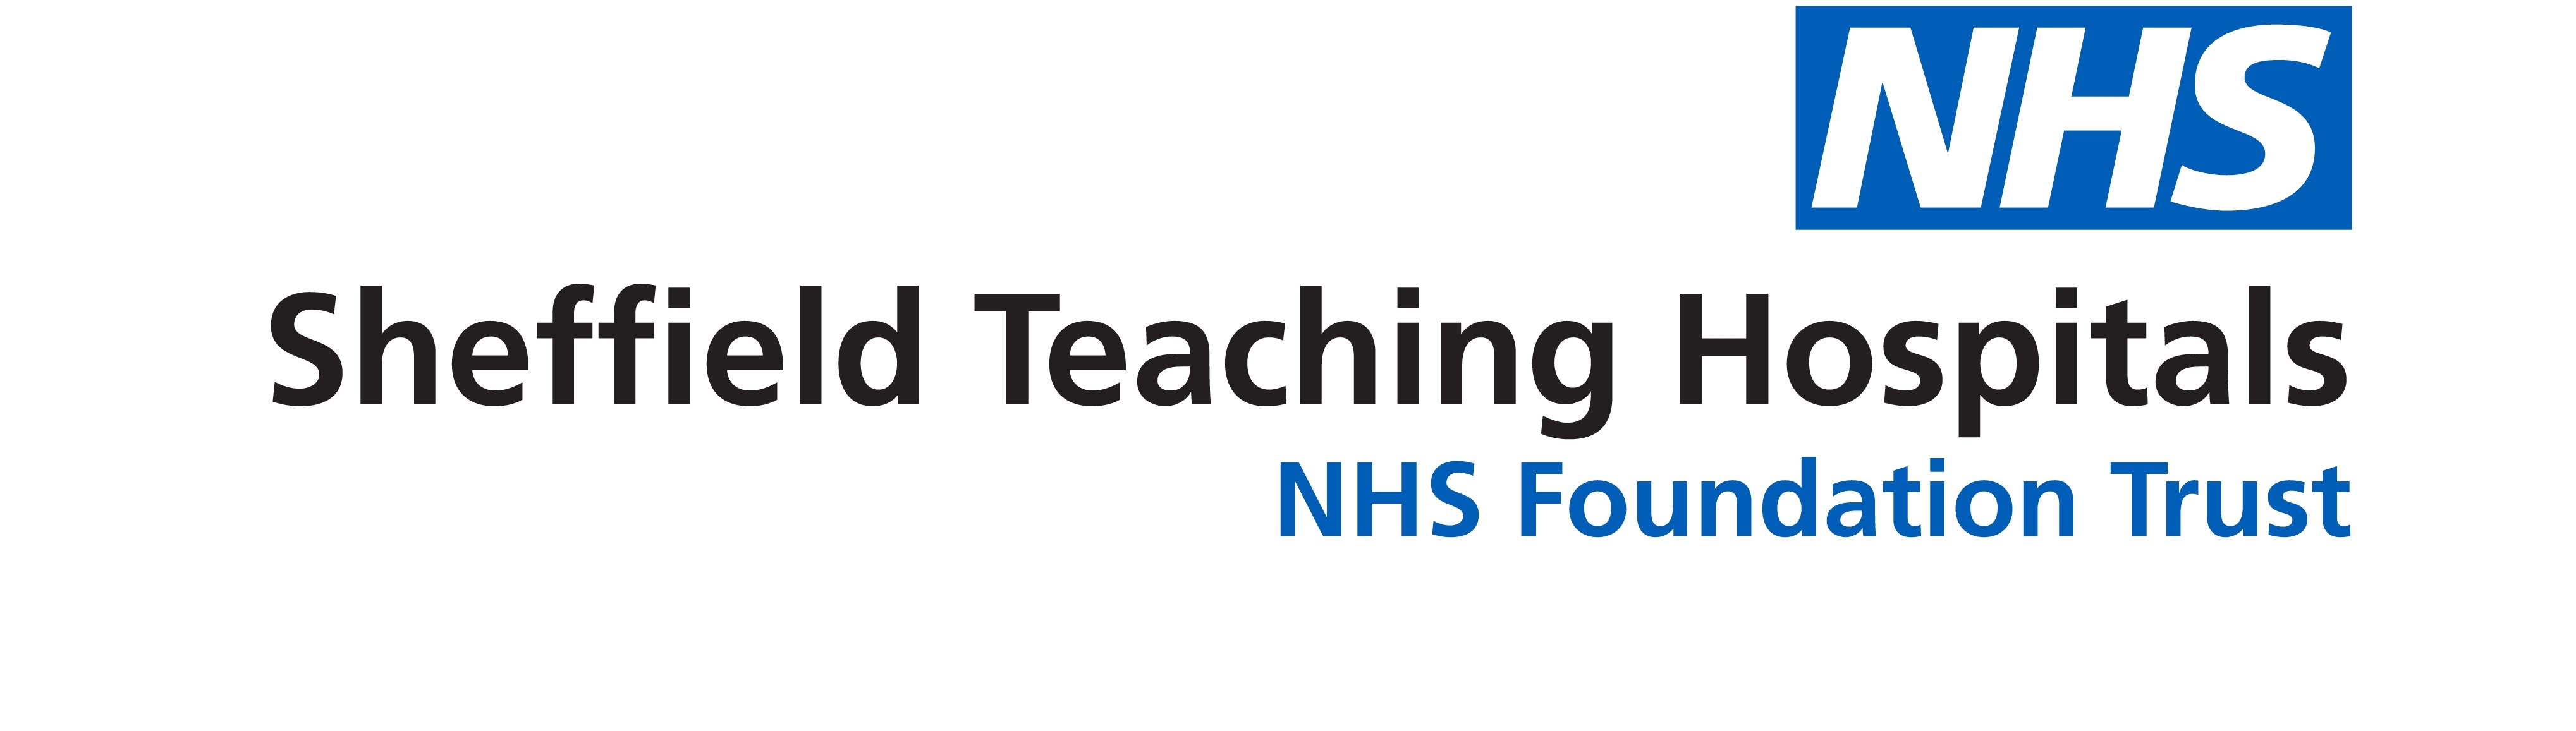 Sheffield_Teaching_Hospitals_NHS_Foundation_Trust_RGB_BLUE_3.jpg